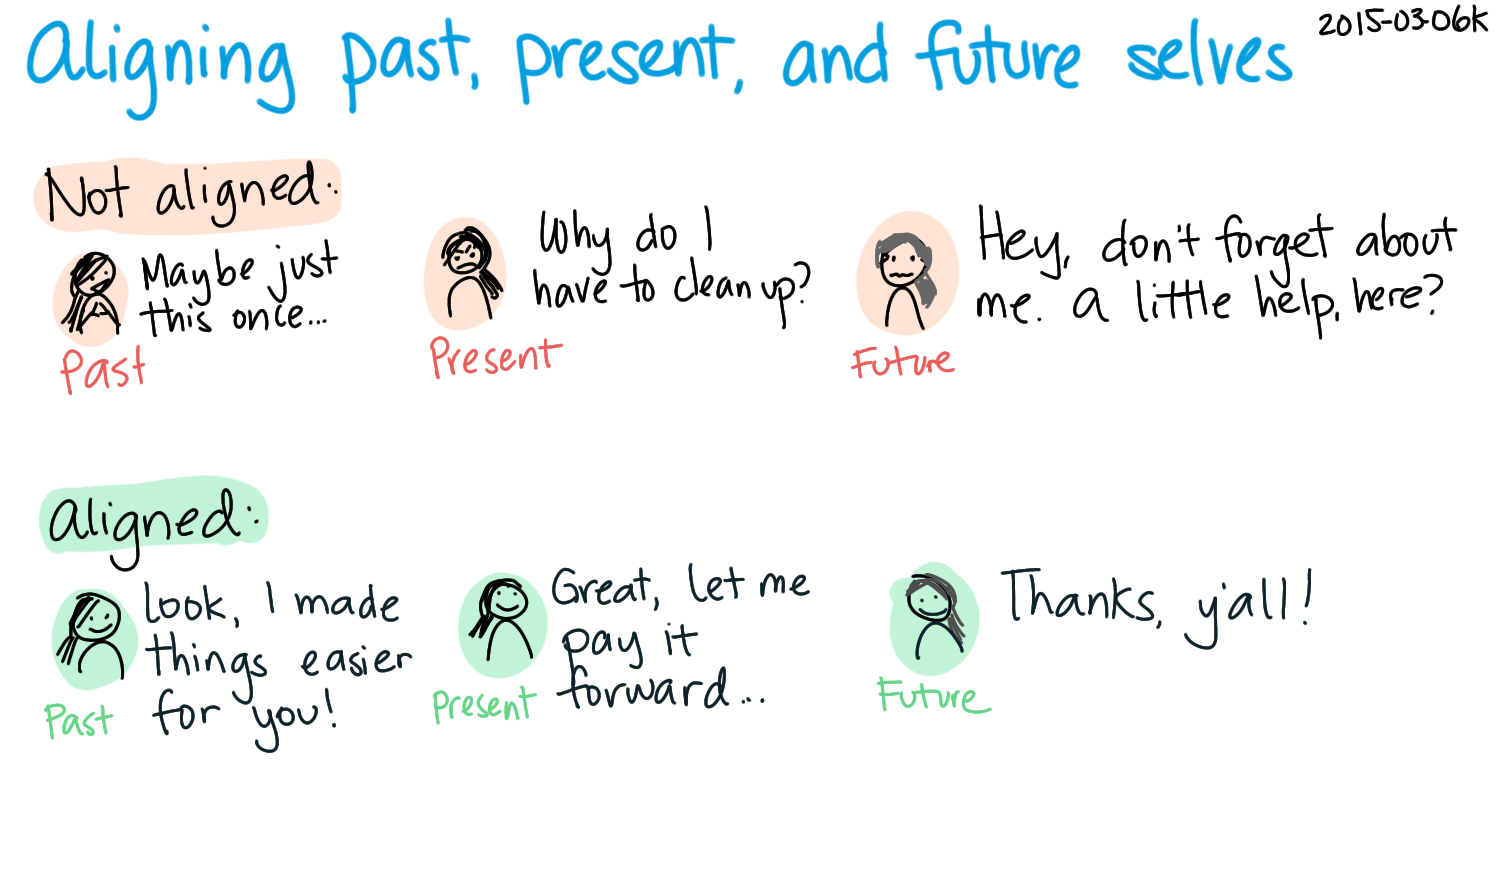 2015-03-06k Aligning past, present, and future selves -- index card #harmony #alignment #selves.png